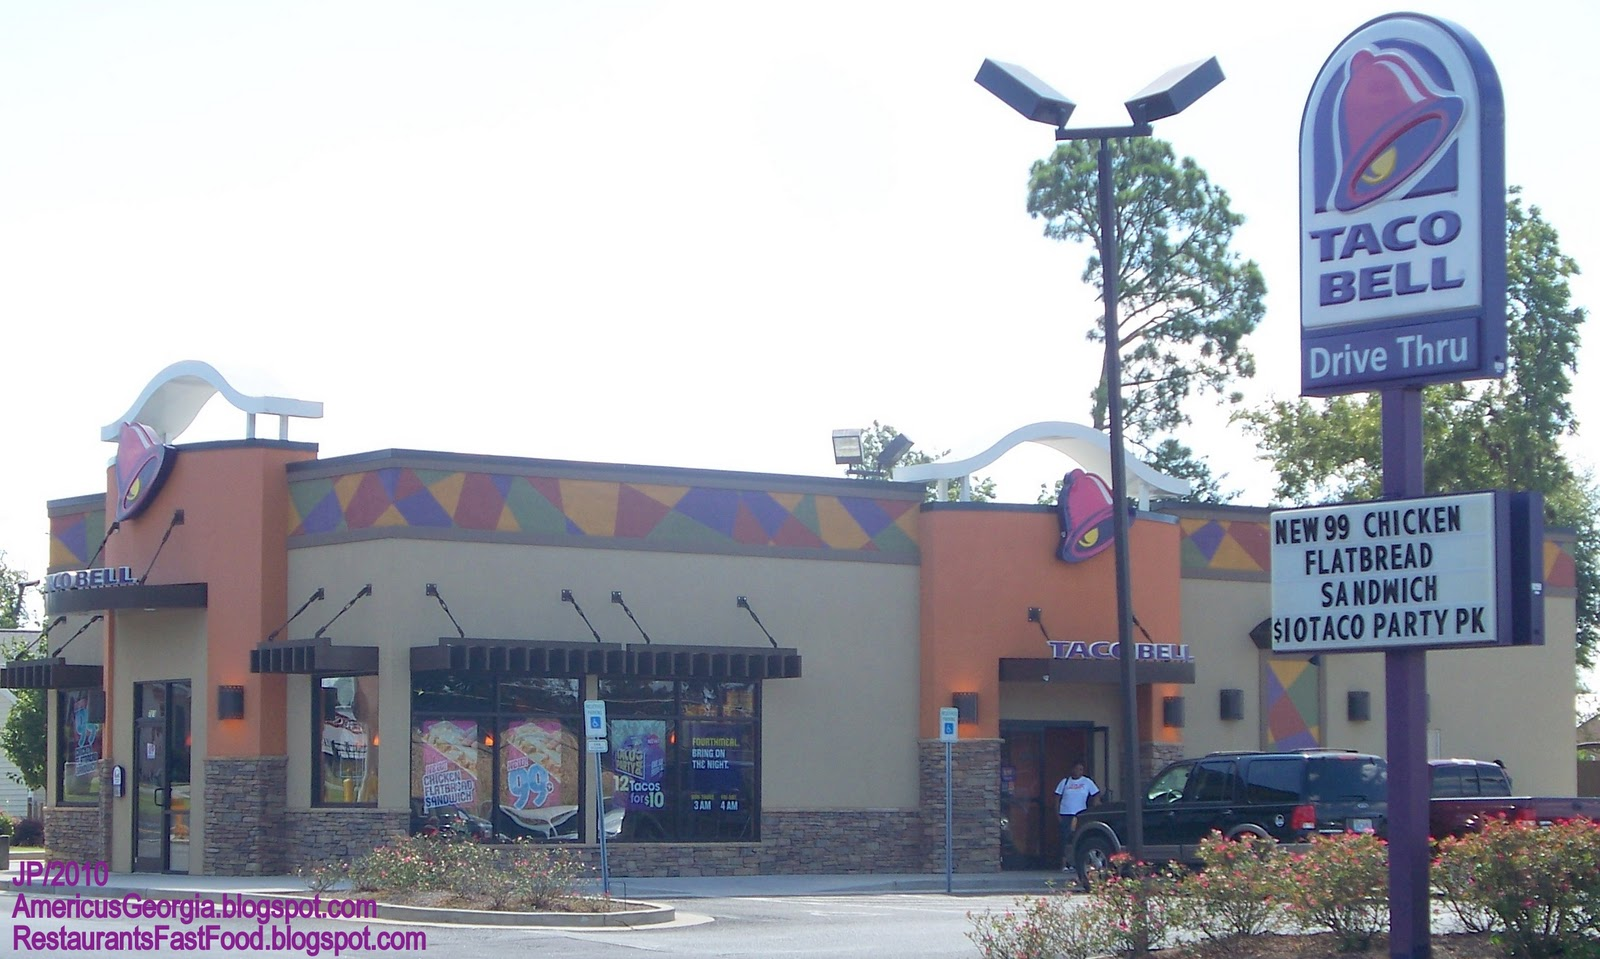 Taco Bell Americus Georgia East Forsyth Street Mexican Fast Food Restaurant Sumter County